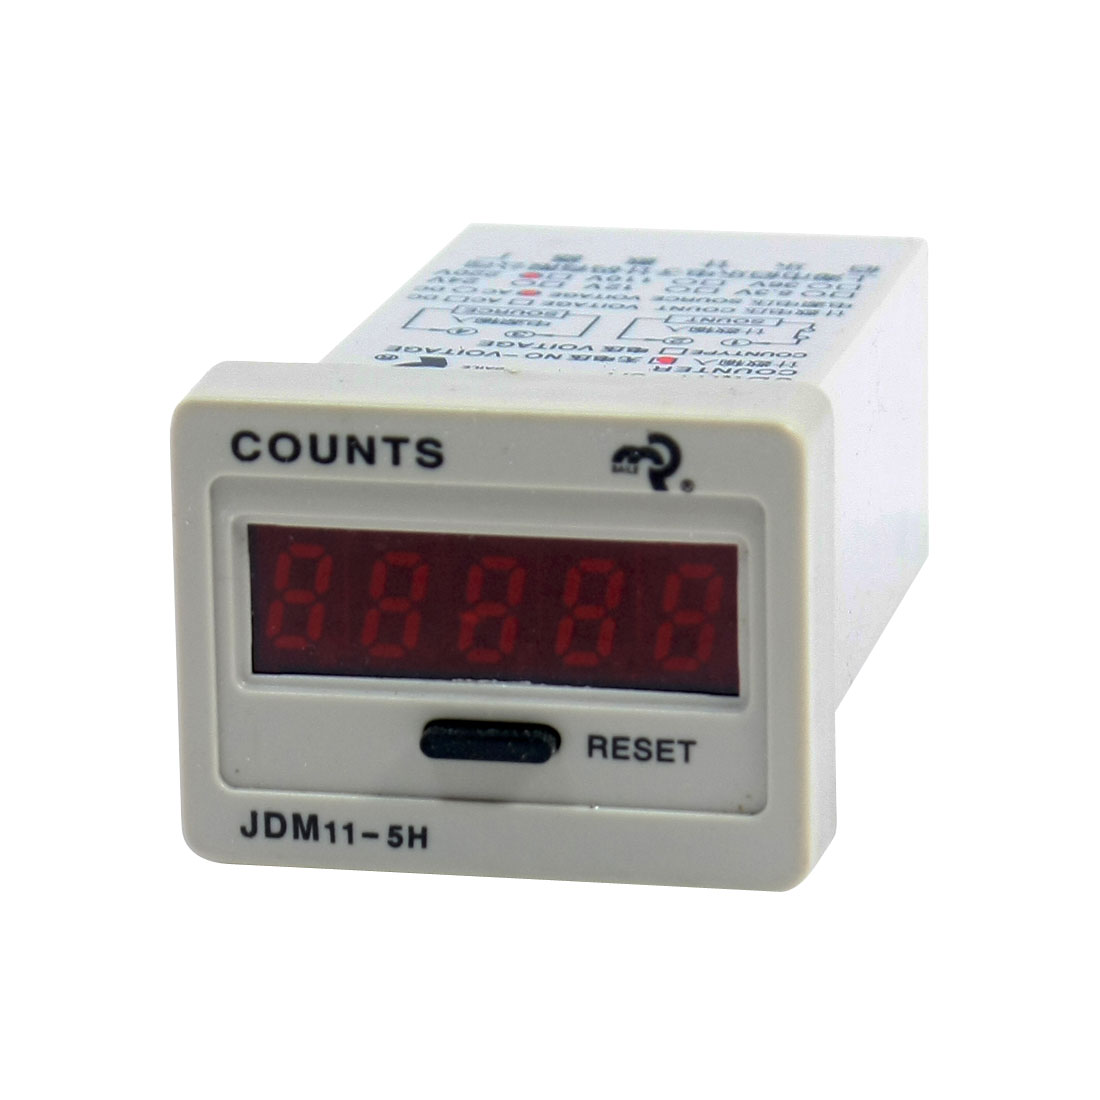 Reset Panel Mount 0-99999 LED Display Digital Counter JDM11-5H AC 220V